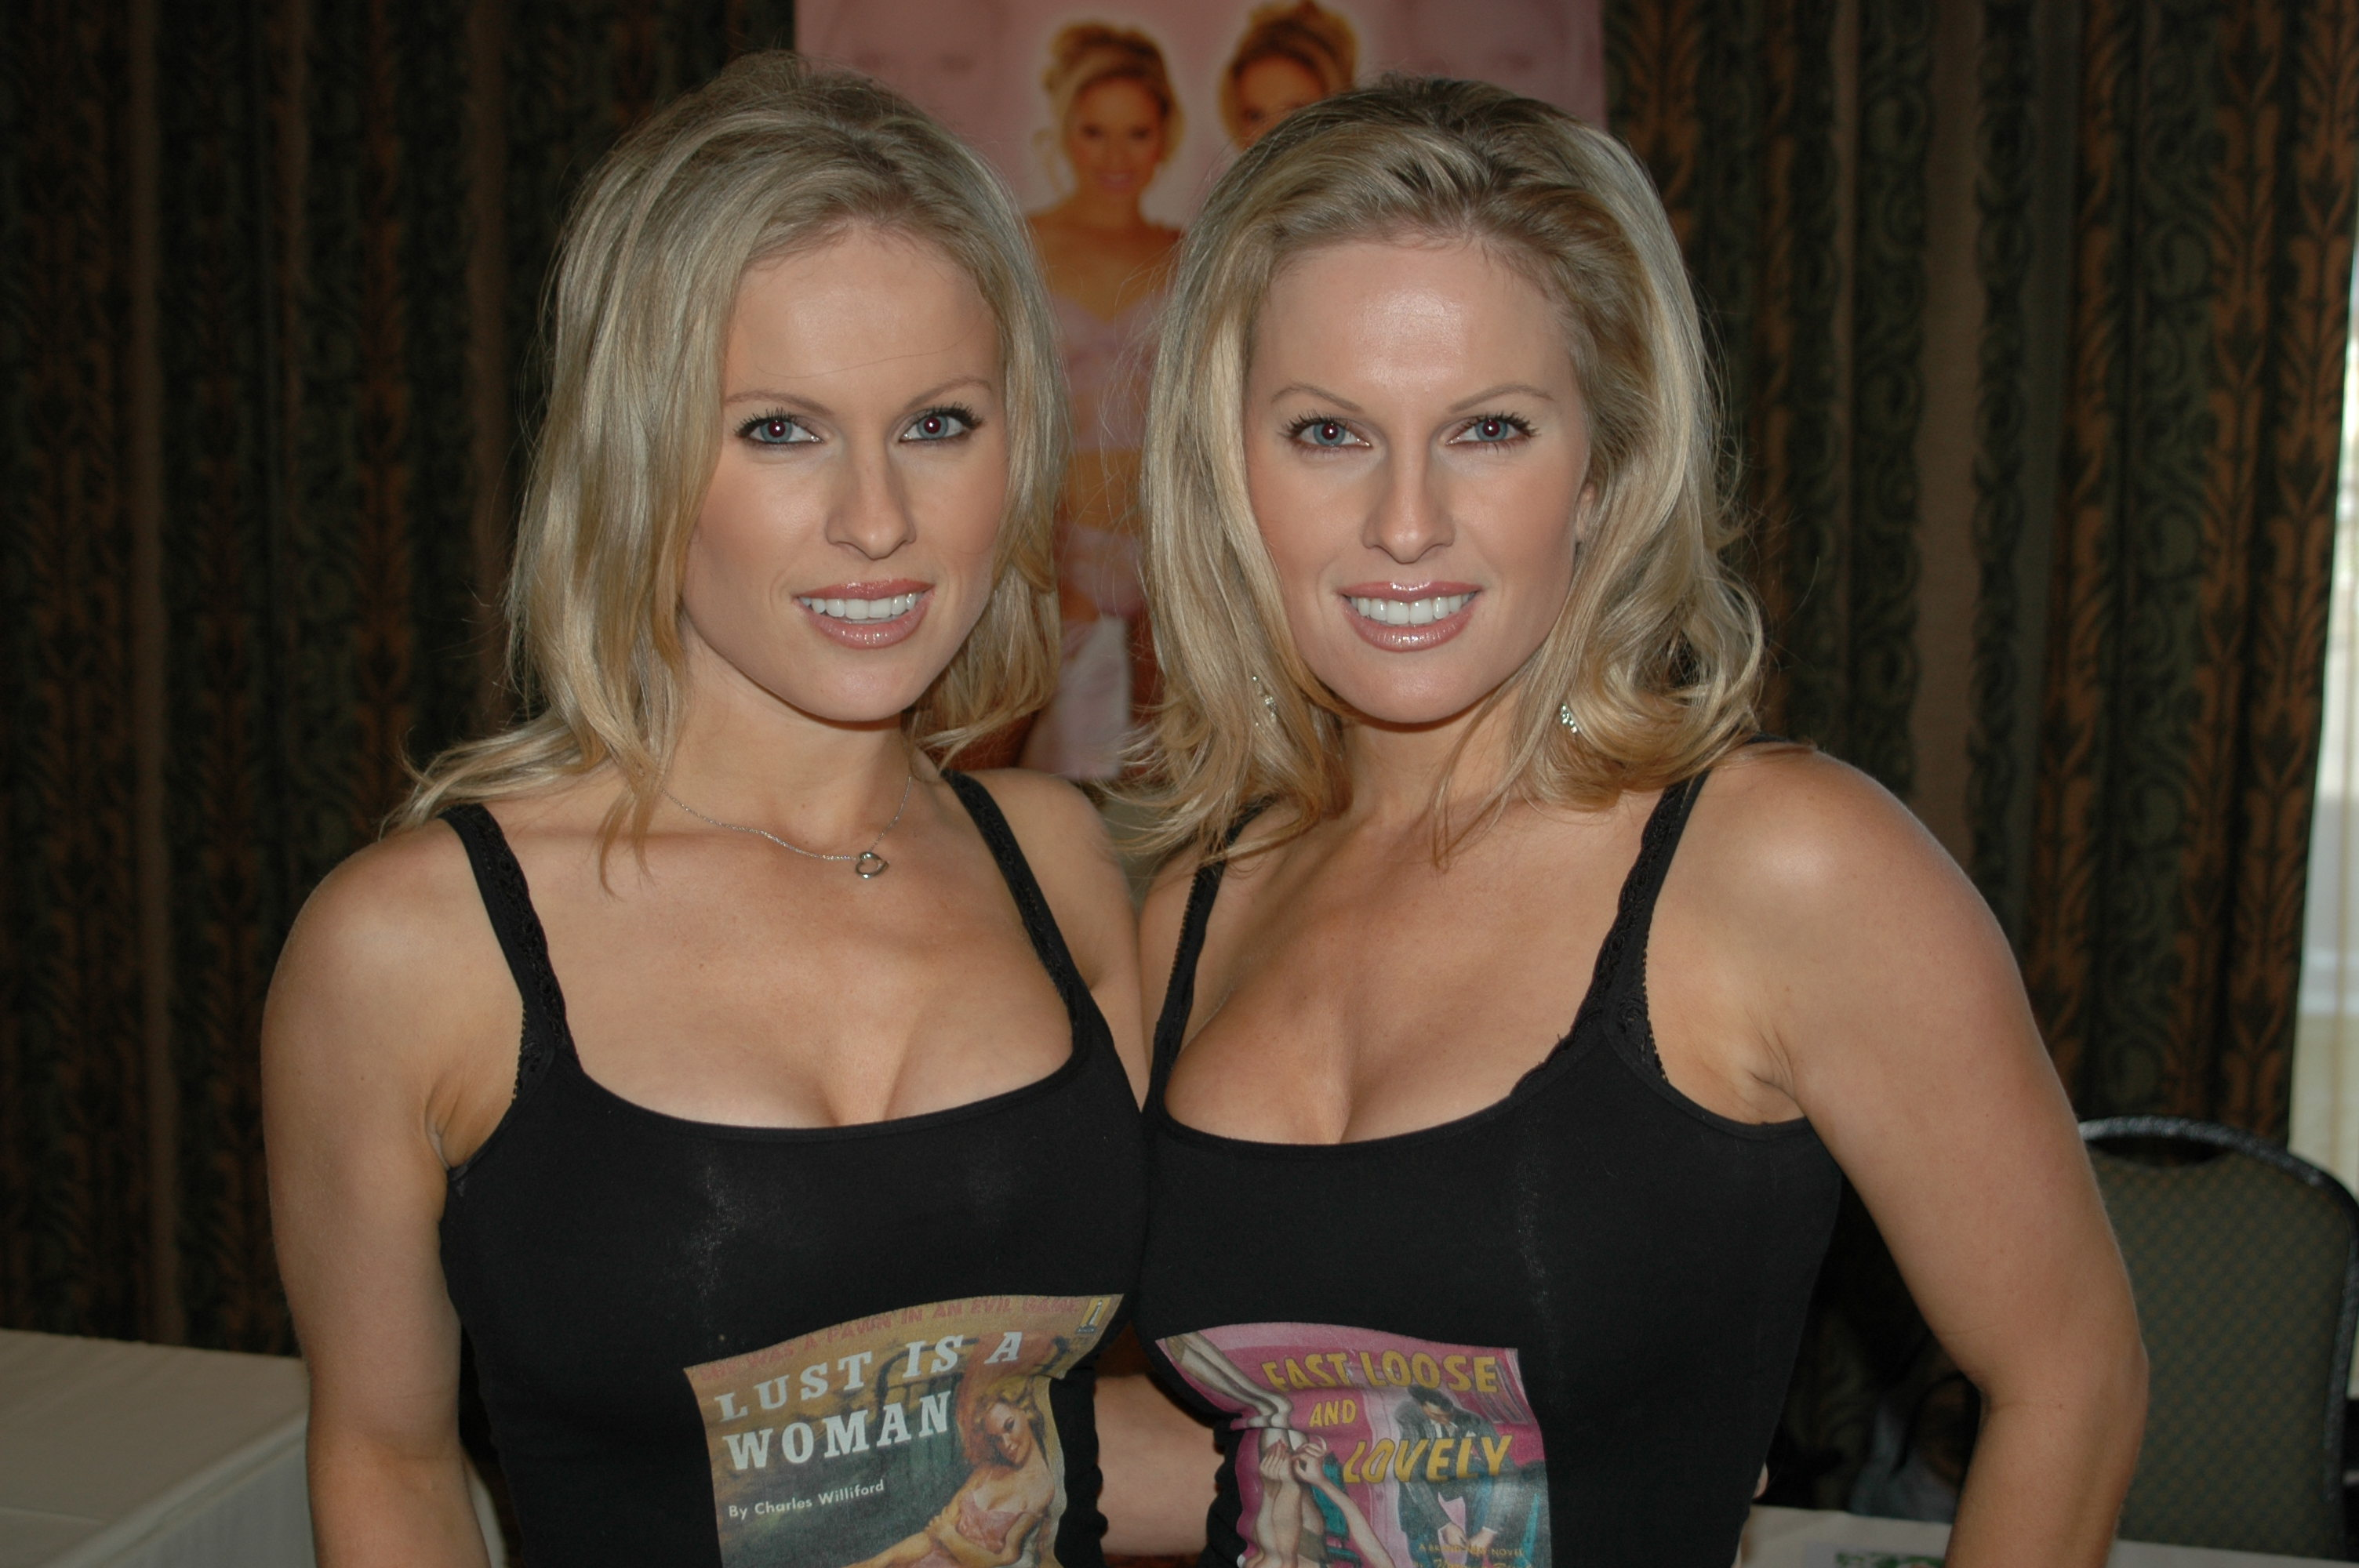 sexy blonde haired twin sisters in black tank tops